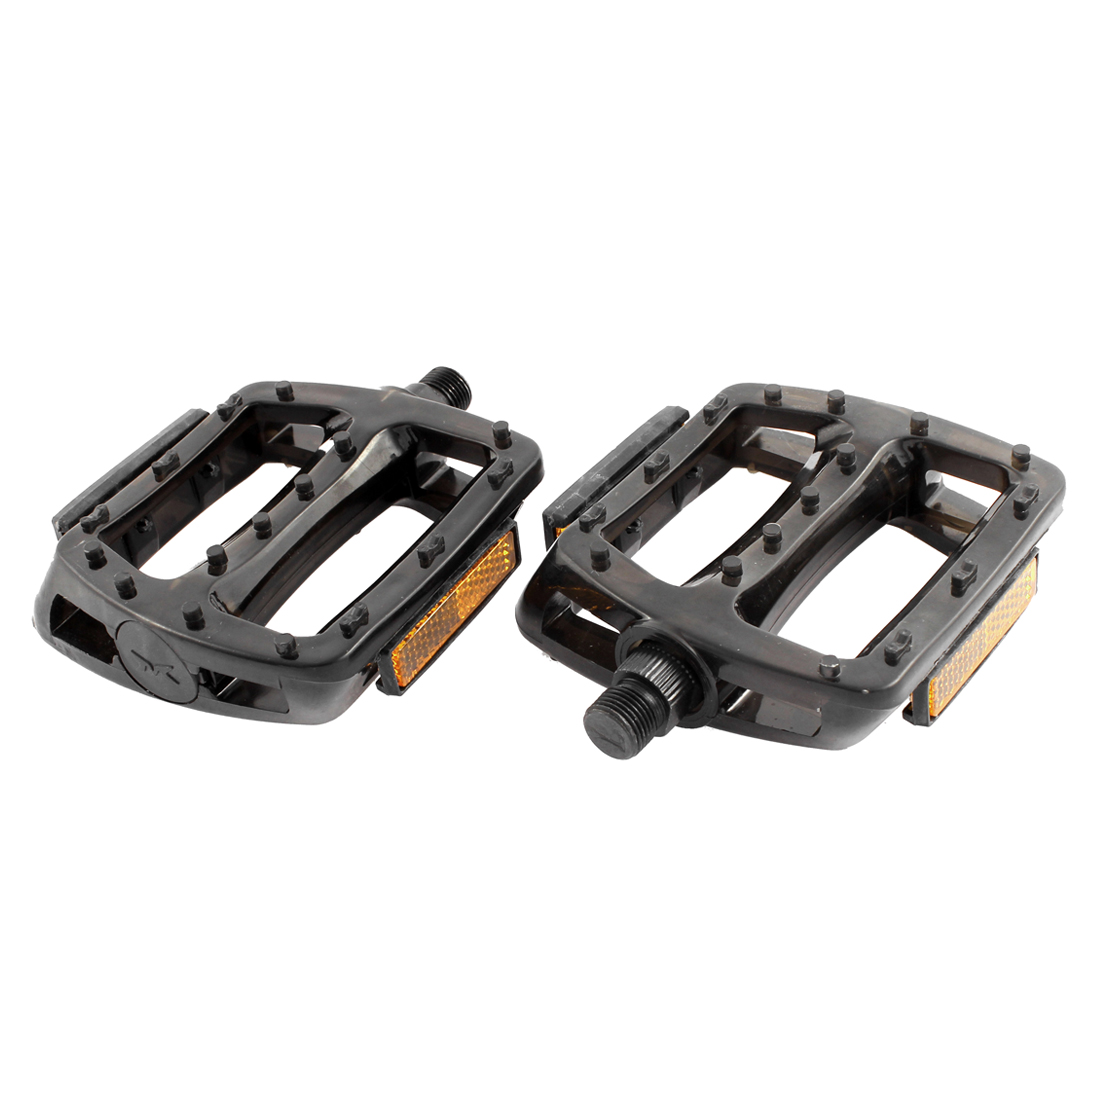 Pair FIXED GEAR Bike Bicycle Plastic Nonslip Platform Flat Cage Pedals Black